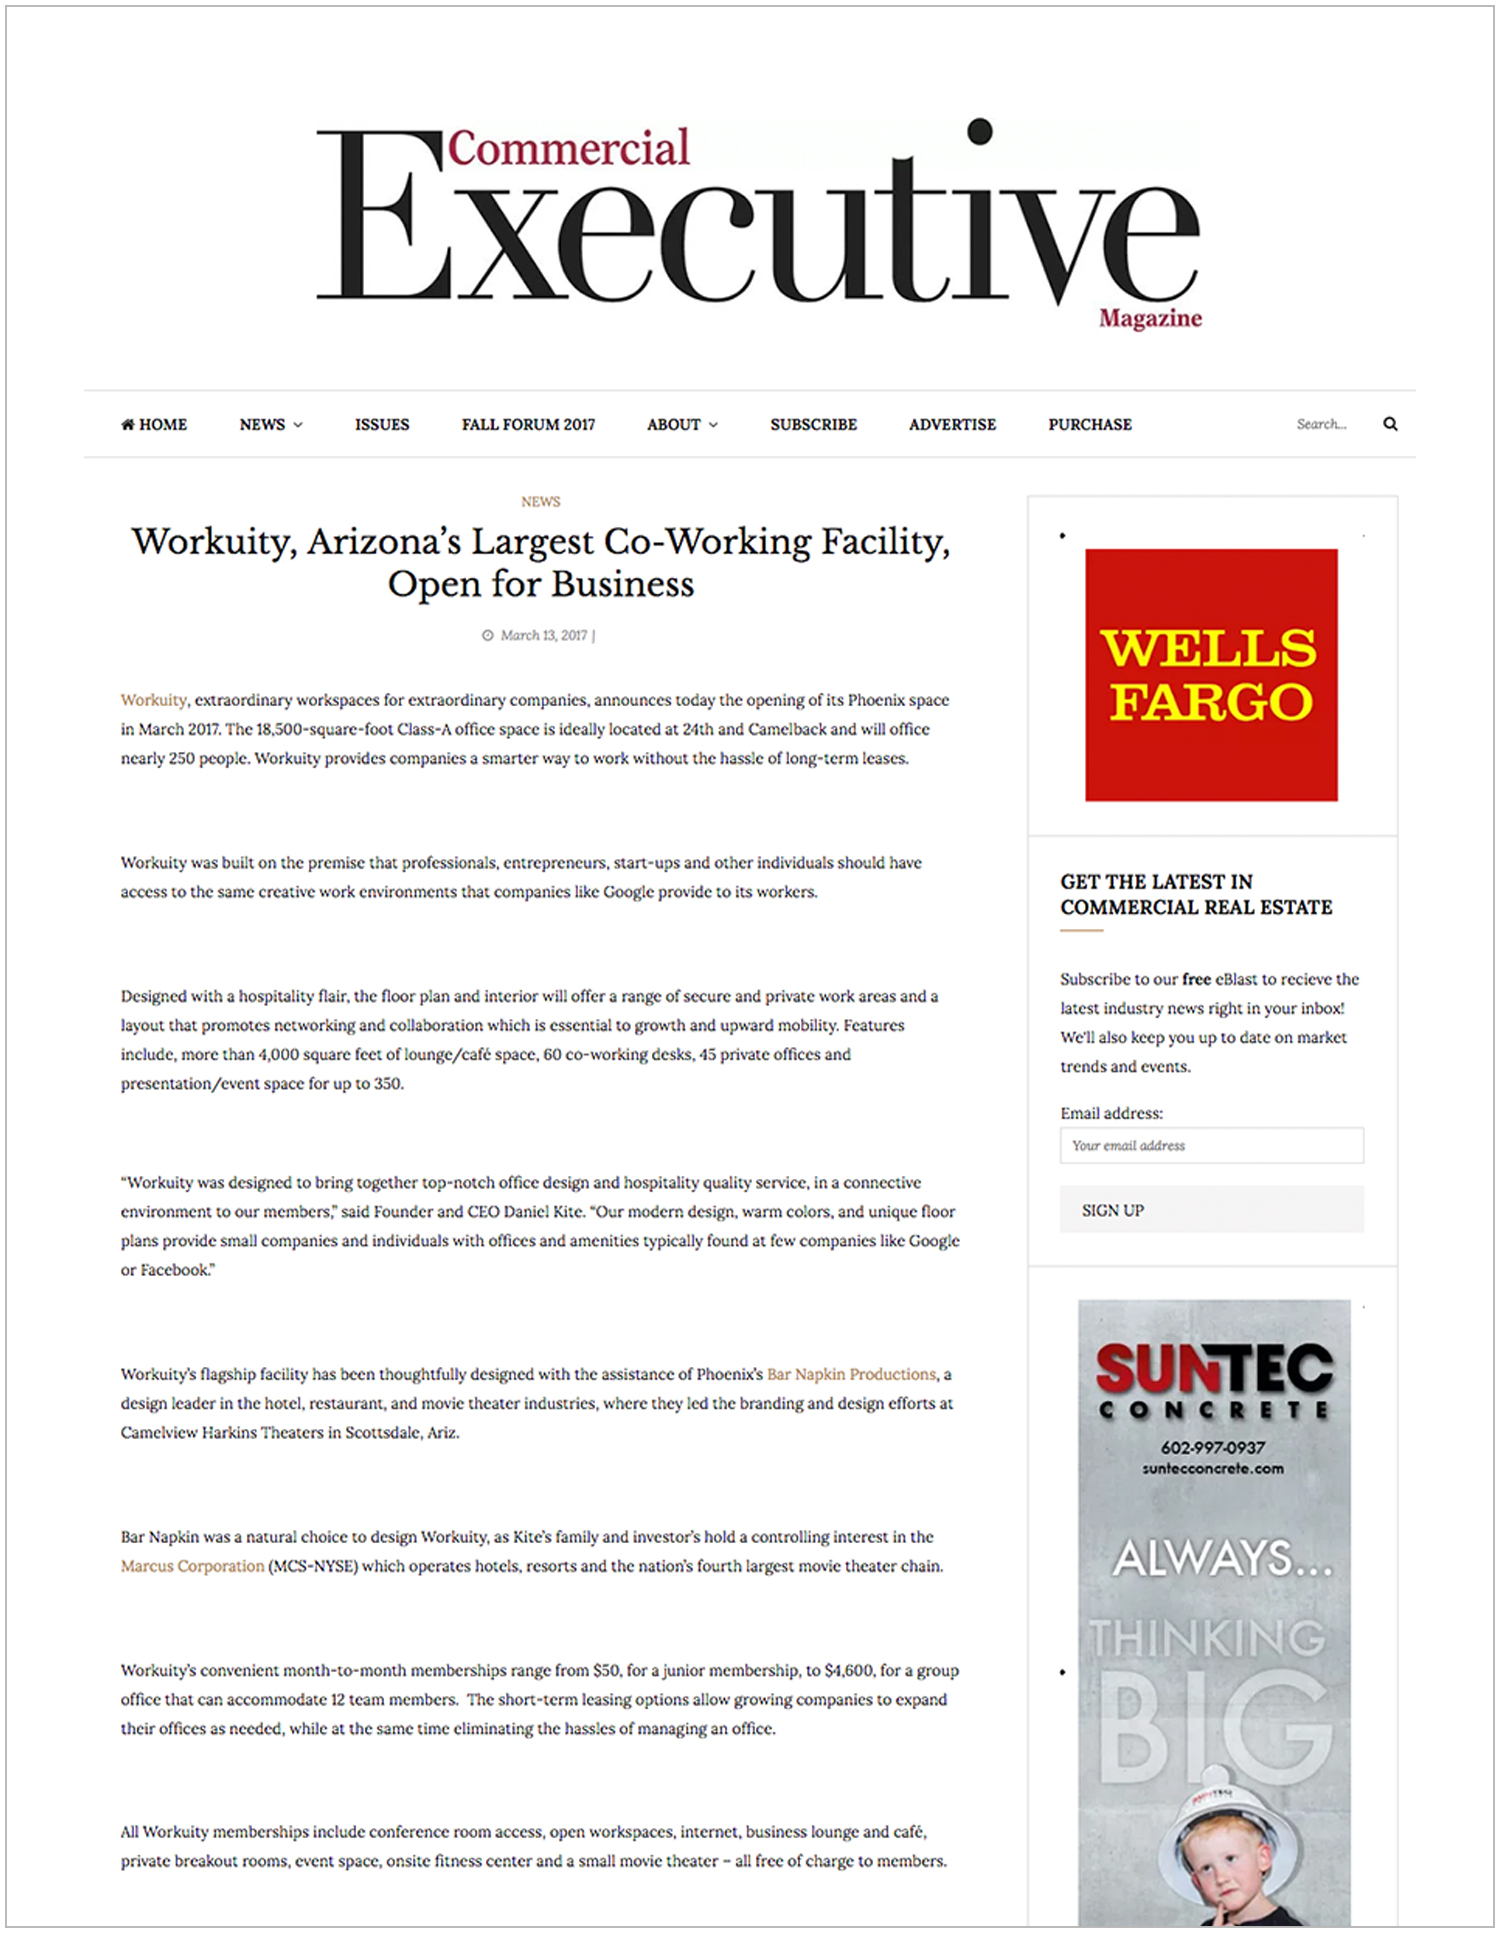 170313 Commerical Executive Workuity Article.jpg